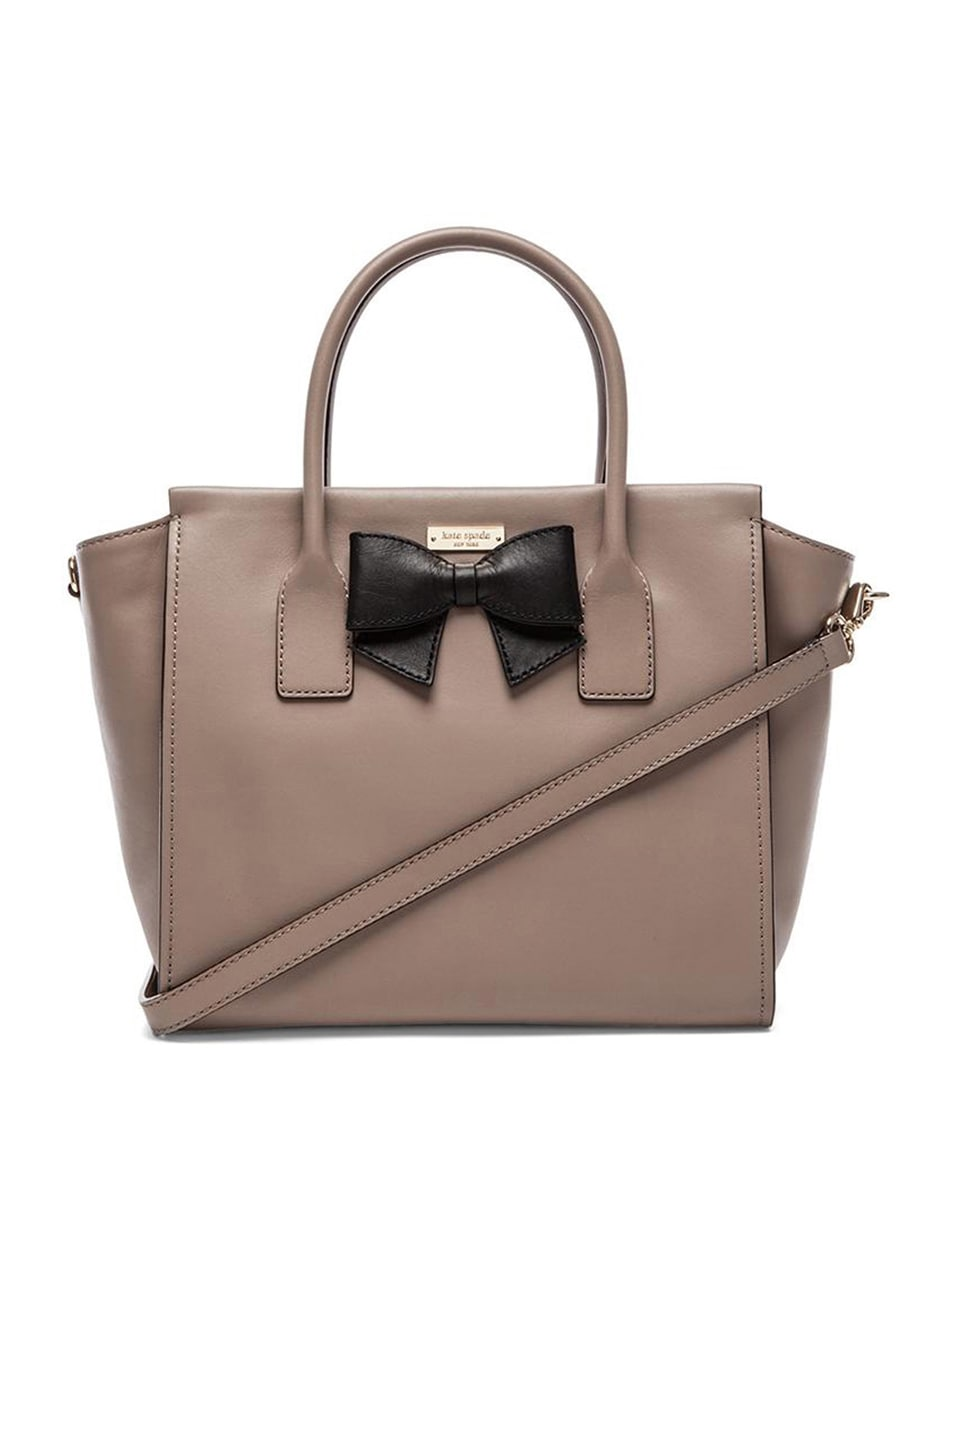 kate spade new york Charee Tote in Warm Putty & Black